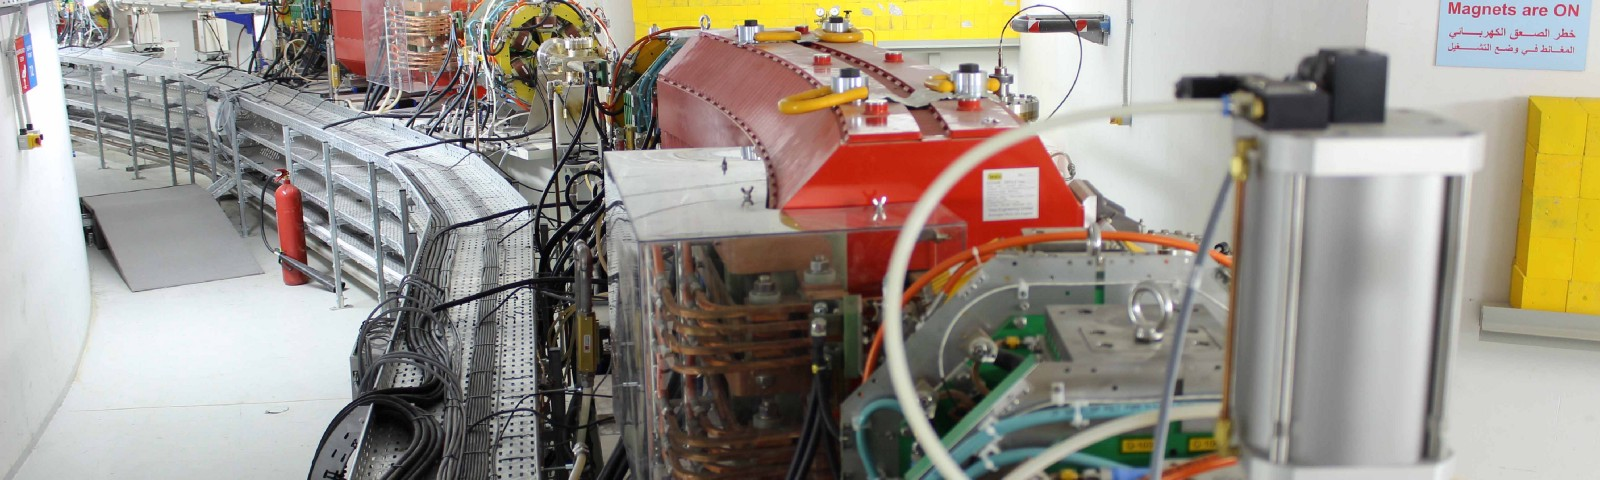 The SESAME particle accelerator in Jordan opened on 16 May. Image credit: SESAME